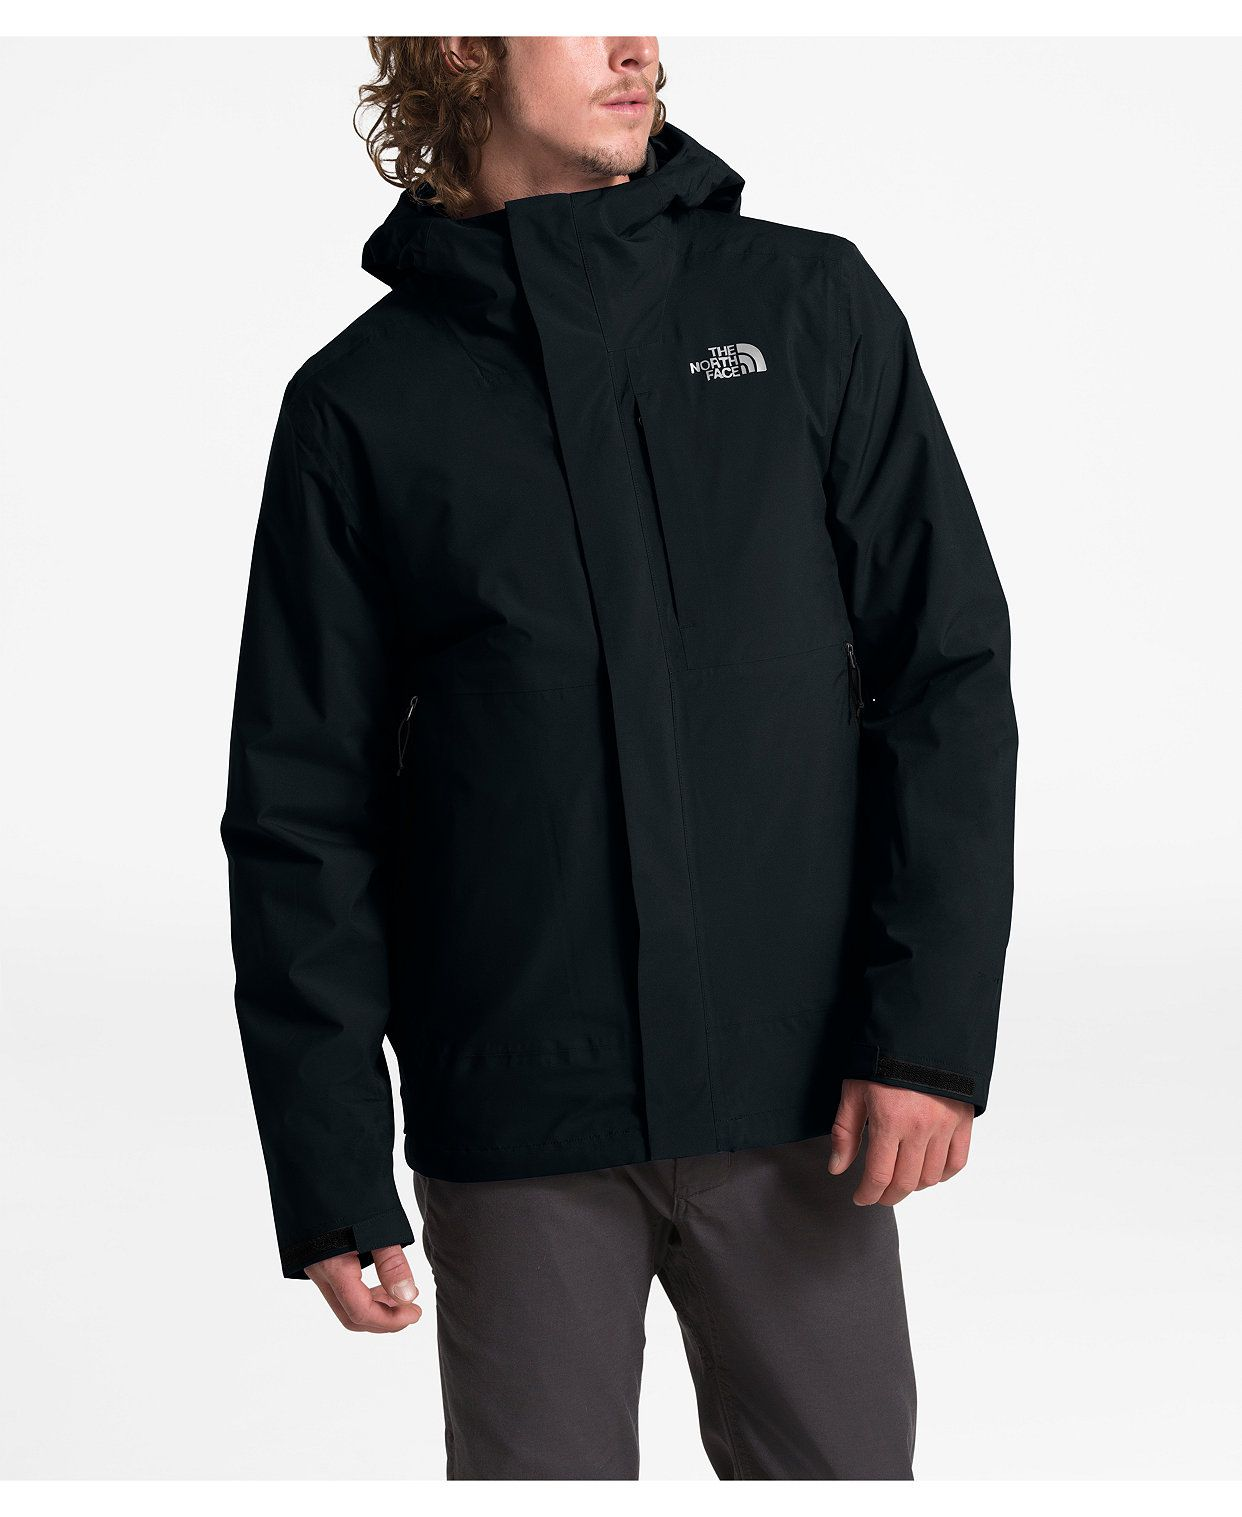 The North Face Mens Carto 3 In 1 Triclimate Jacket Reviews Coats Jackets Men Macy S North Face Jacket Womens Hooded Jacket Men Triclimate Jacket [ 1517 x 1242 Pixel ]